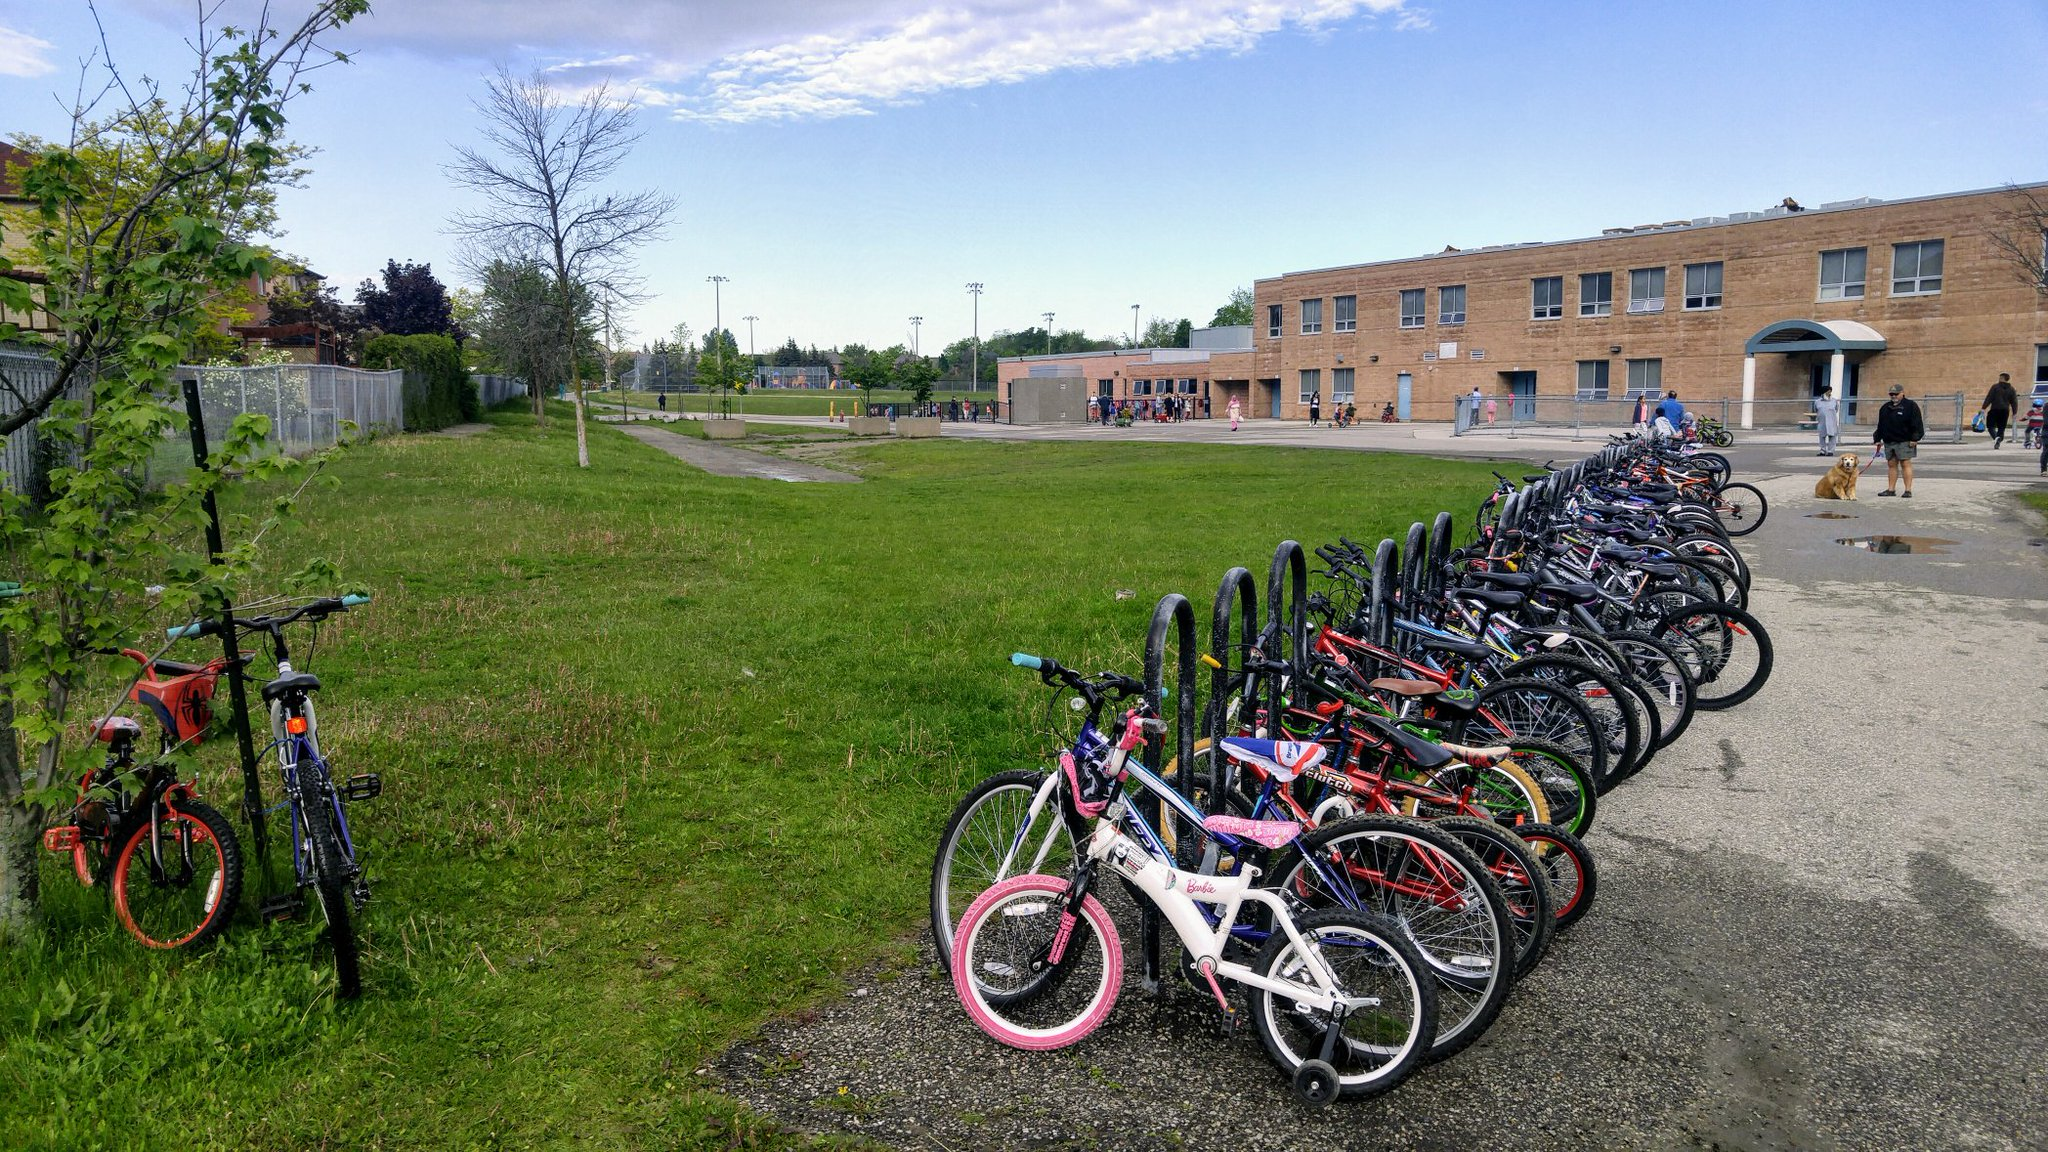 105 bikes today @rjlee_ps for #biketoschoolweek . Can you beat last year's record of 130? 3 more days to try. More prizes. Great job. https://t.co/OKtnjPRfJ7